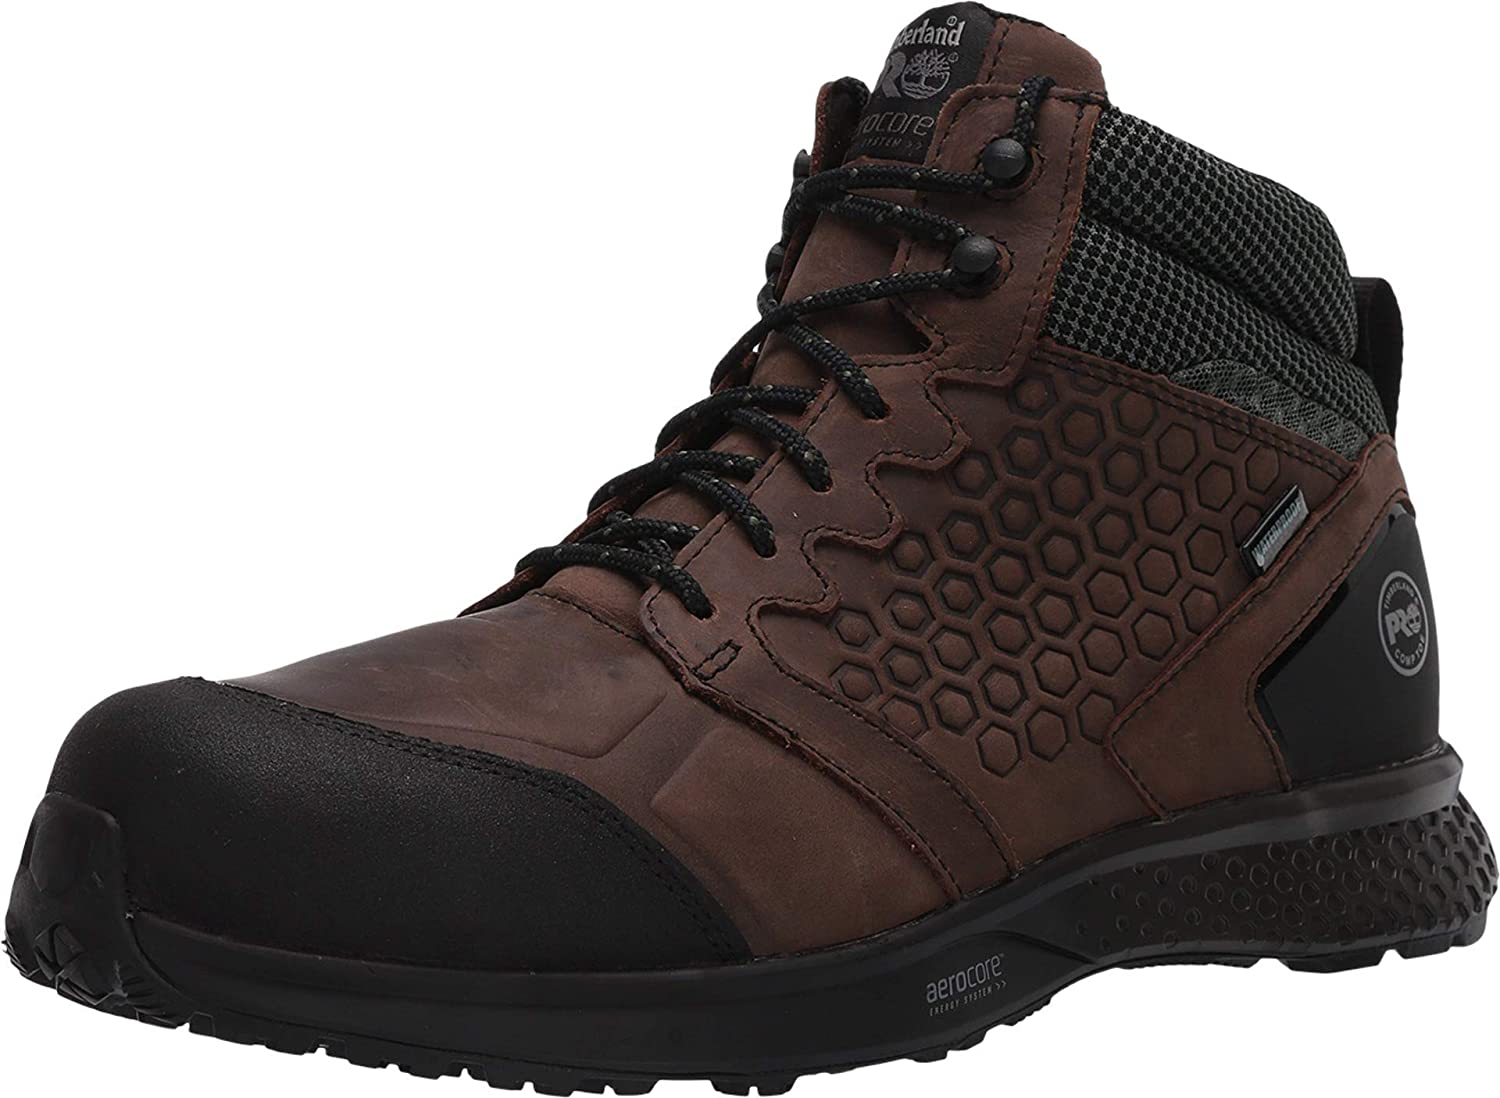 Timberland PRO Men's Mid Reaxion Athletic Hiker Wateproof Composite Toe Work Boot, Brown/Green, 8 Wide